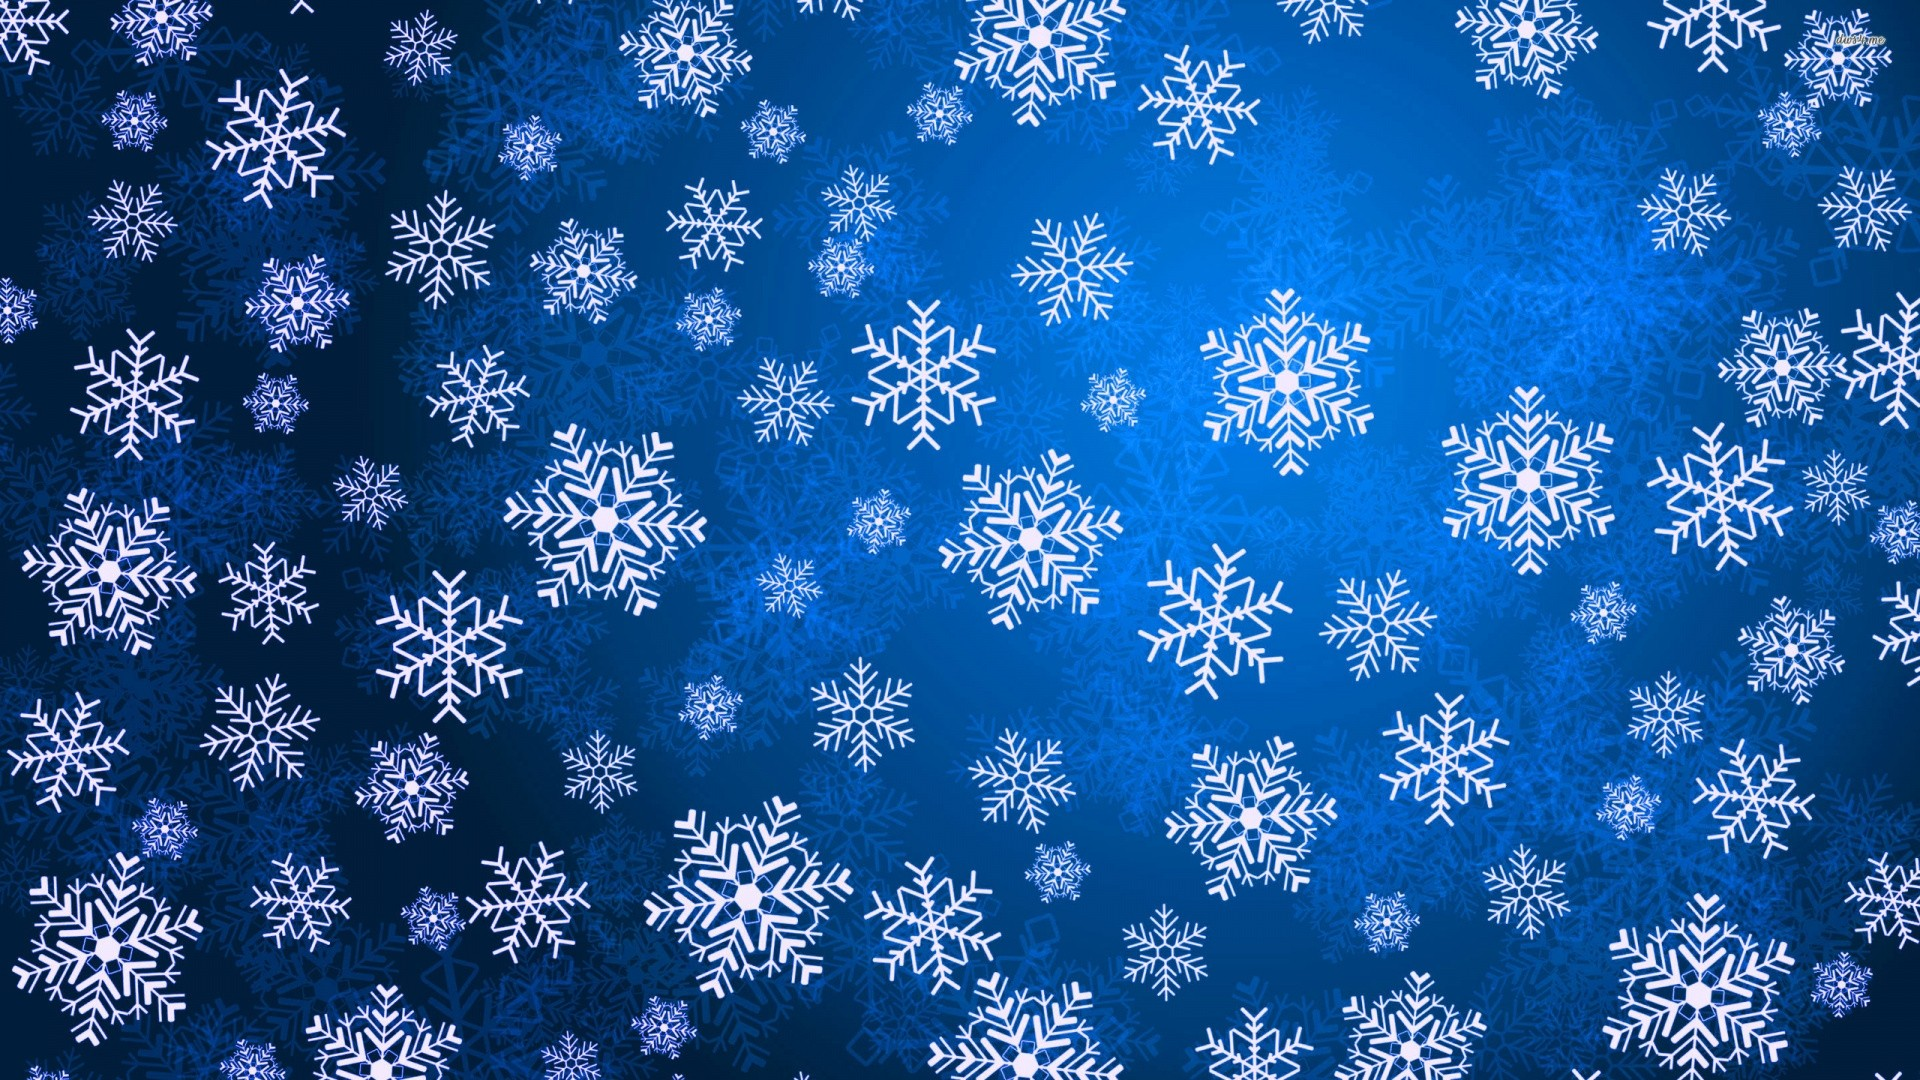 Snowflake Free Wallpaper and Background